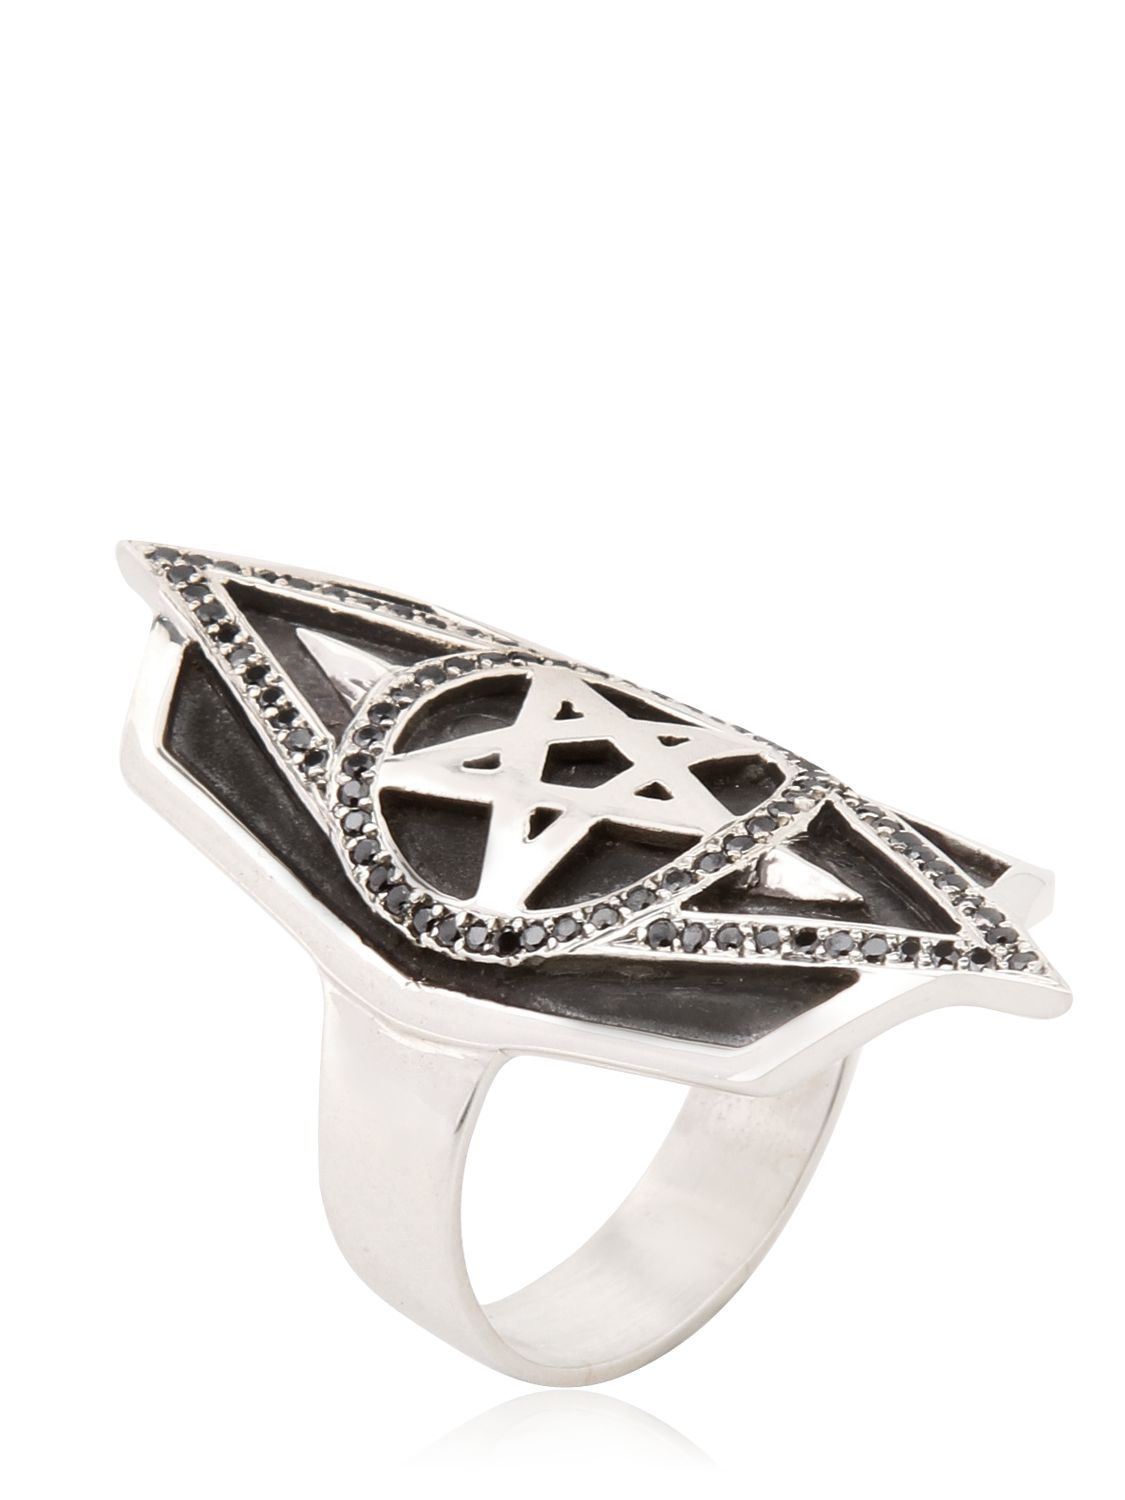 Pentacle Engagement Ring